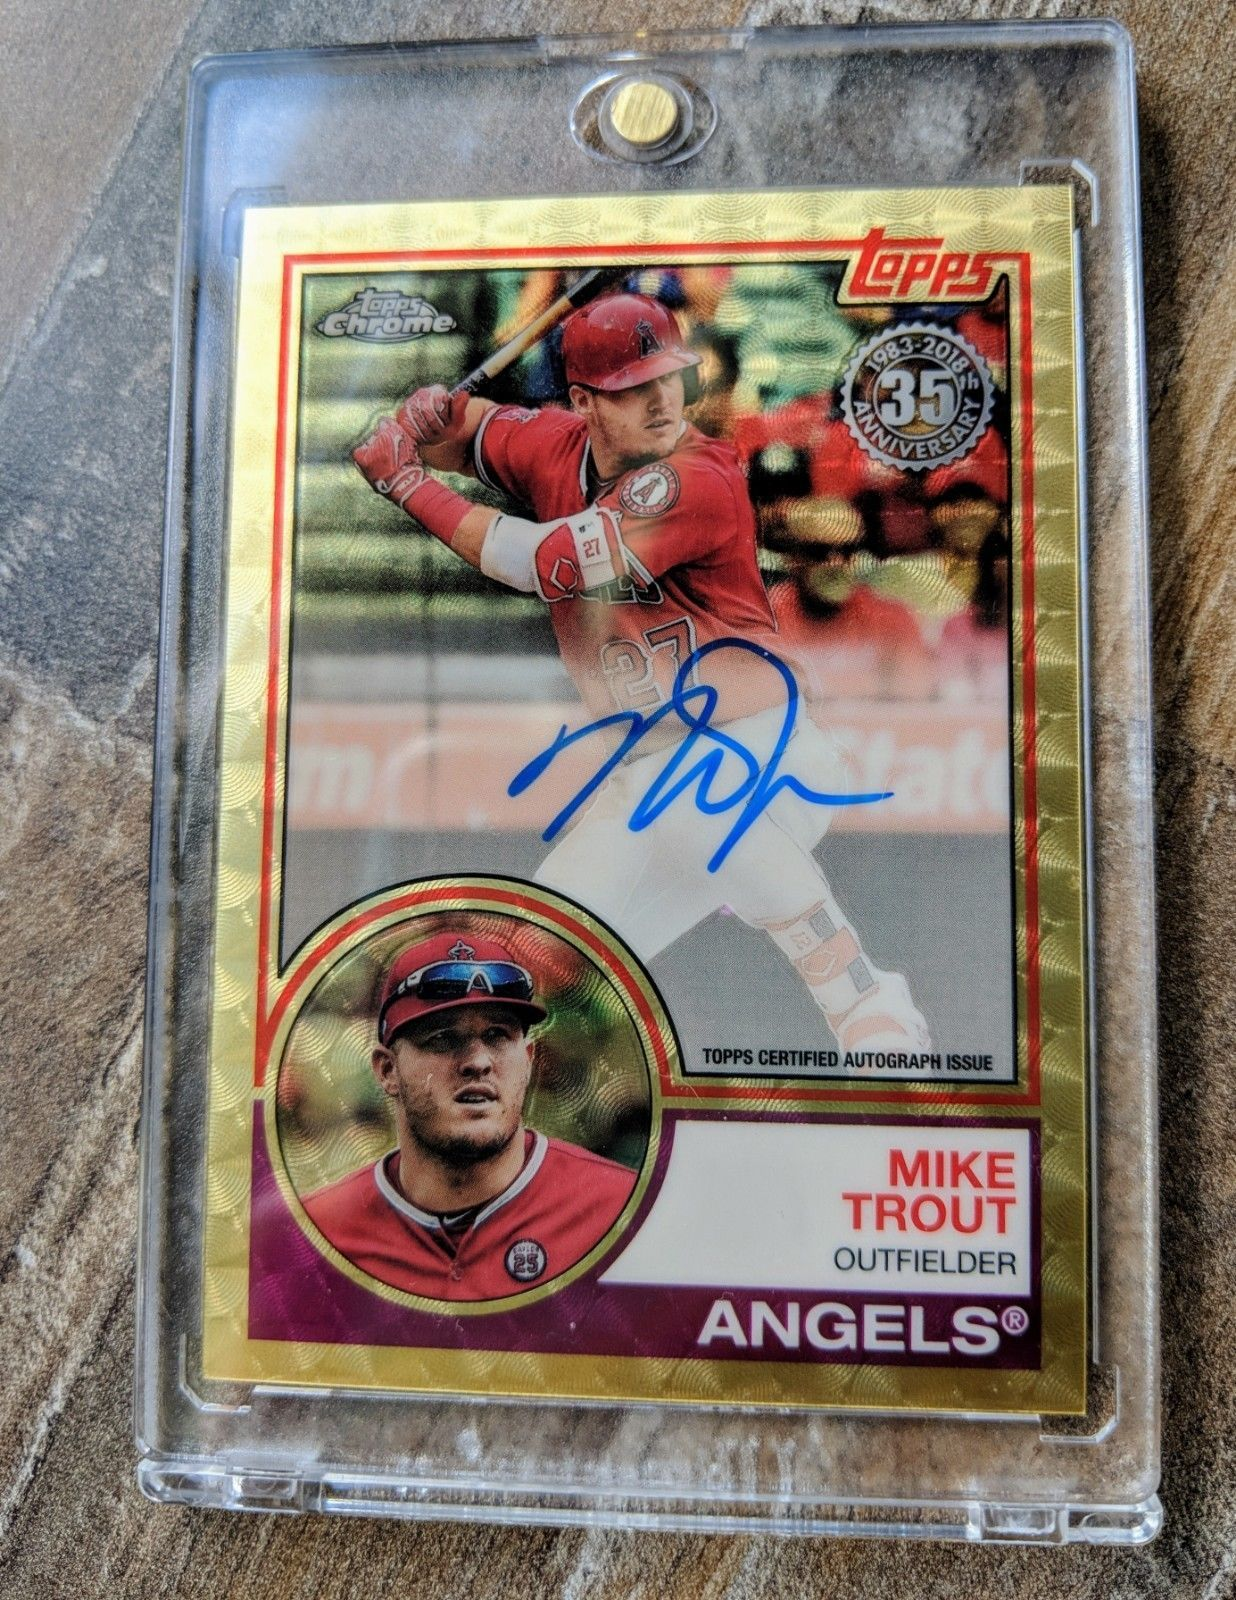 2018 Topps Chrome Mike Trout 35th Anniversary Insert Gold